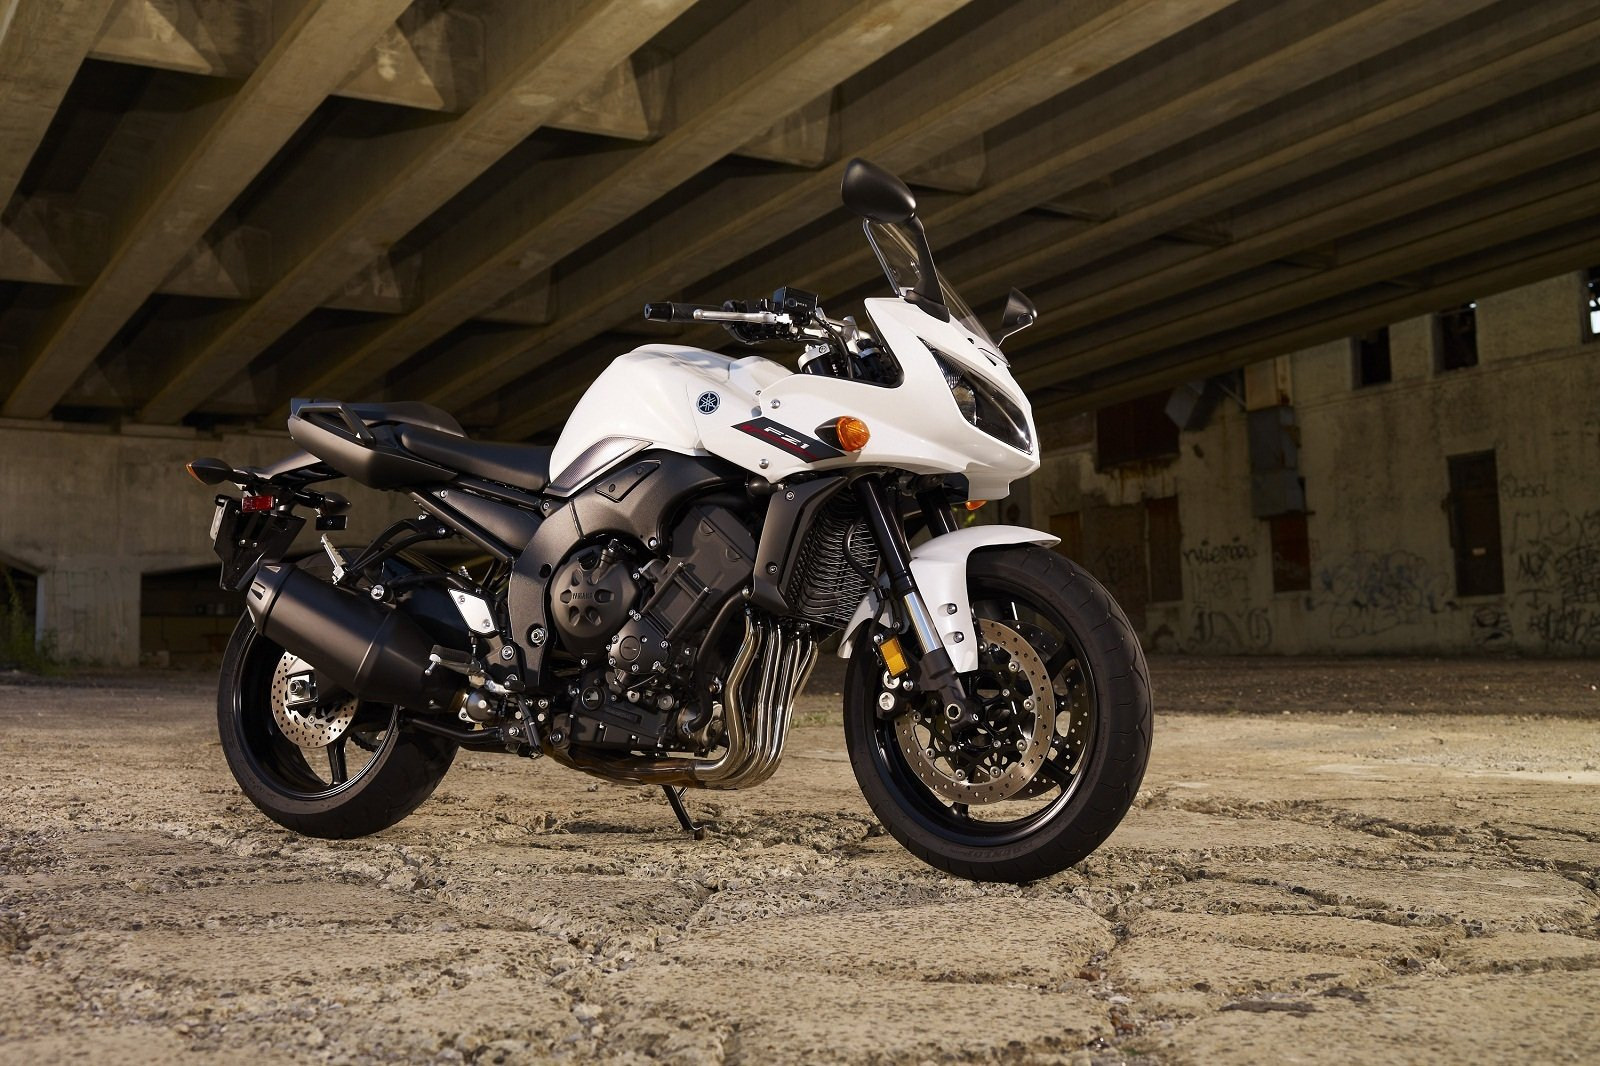 2012 yamaha fz1 picture 418930 motorcycle review top speed. Black Bedroom Furniture Sets. Home Design Ideas